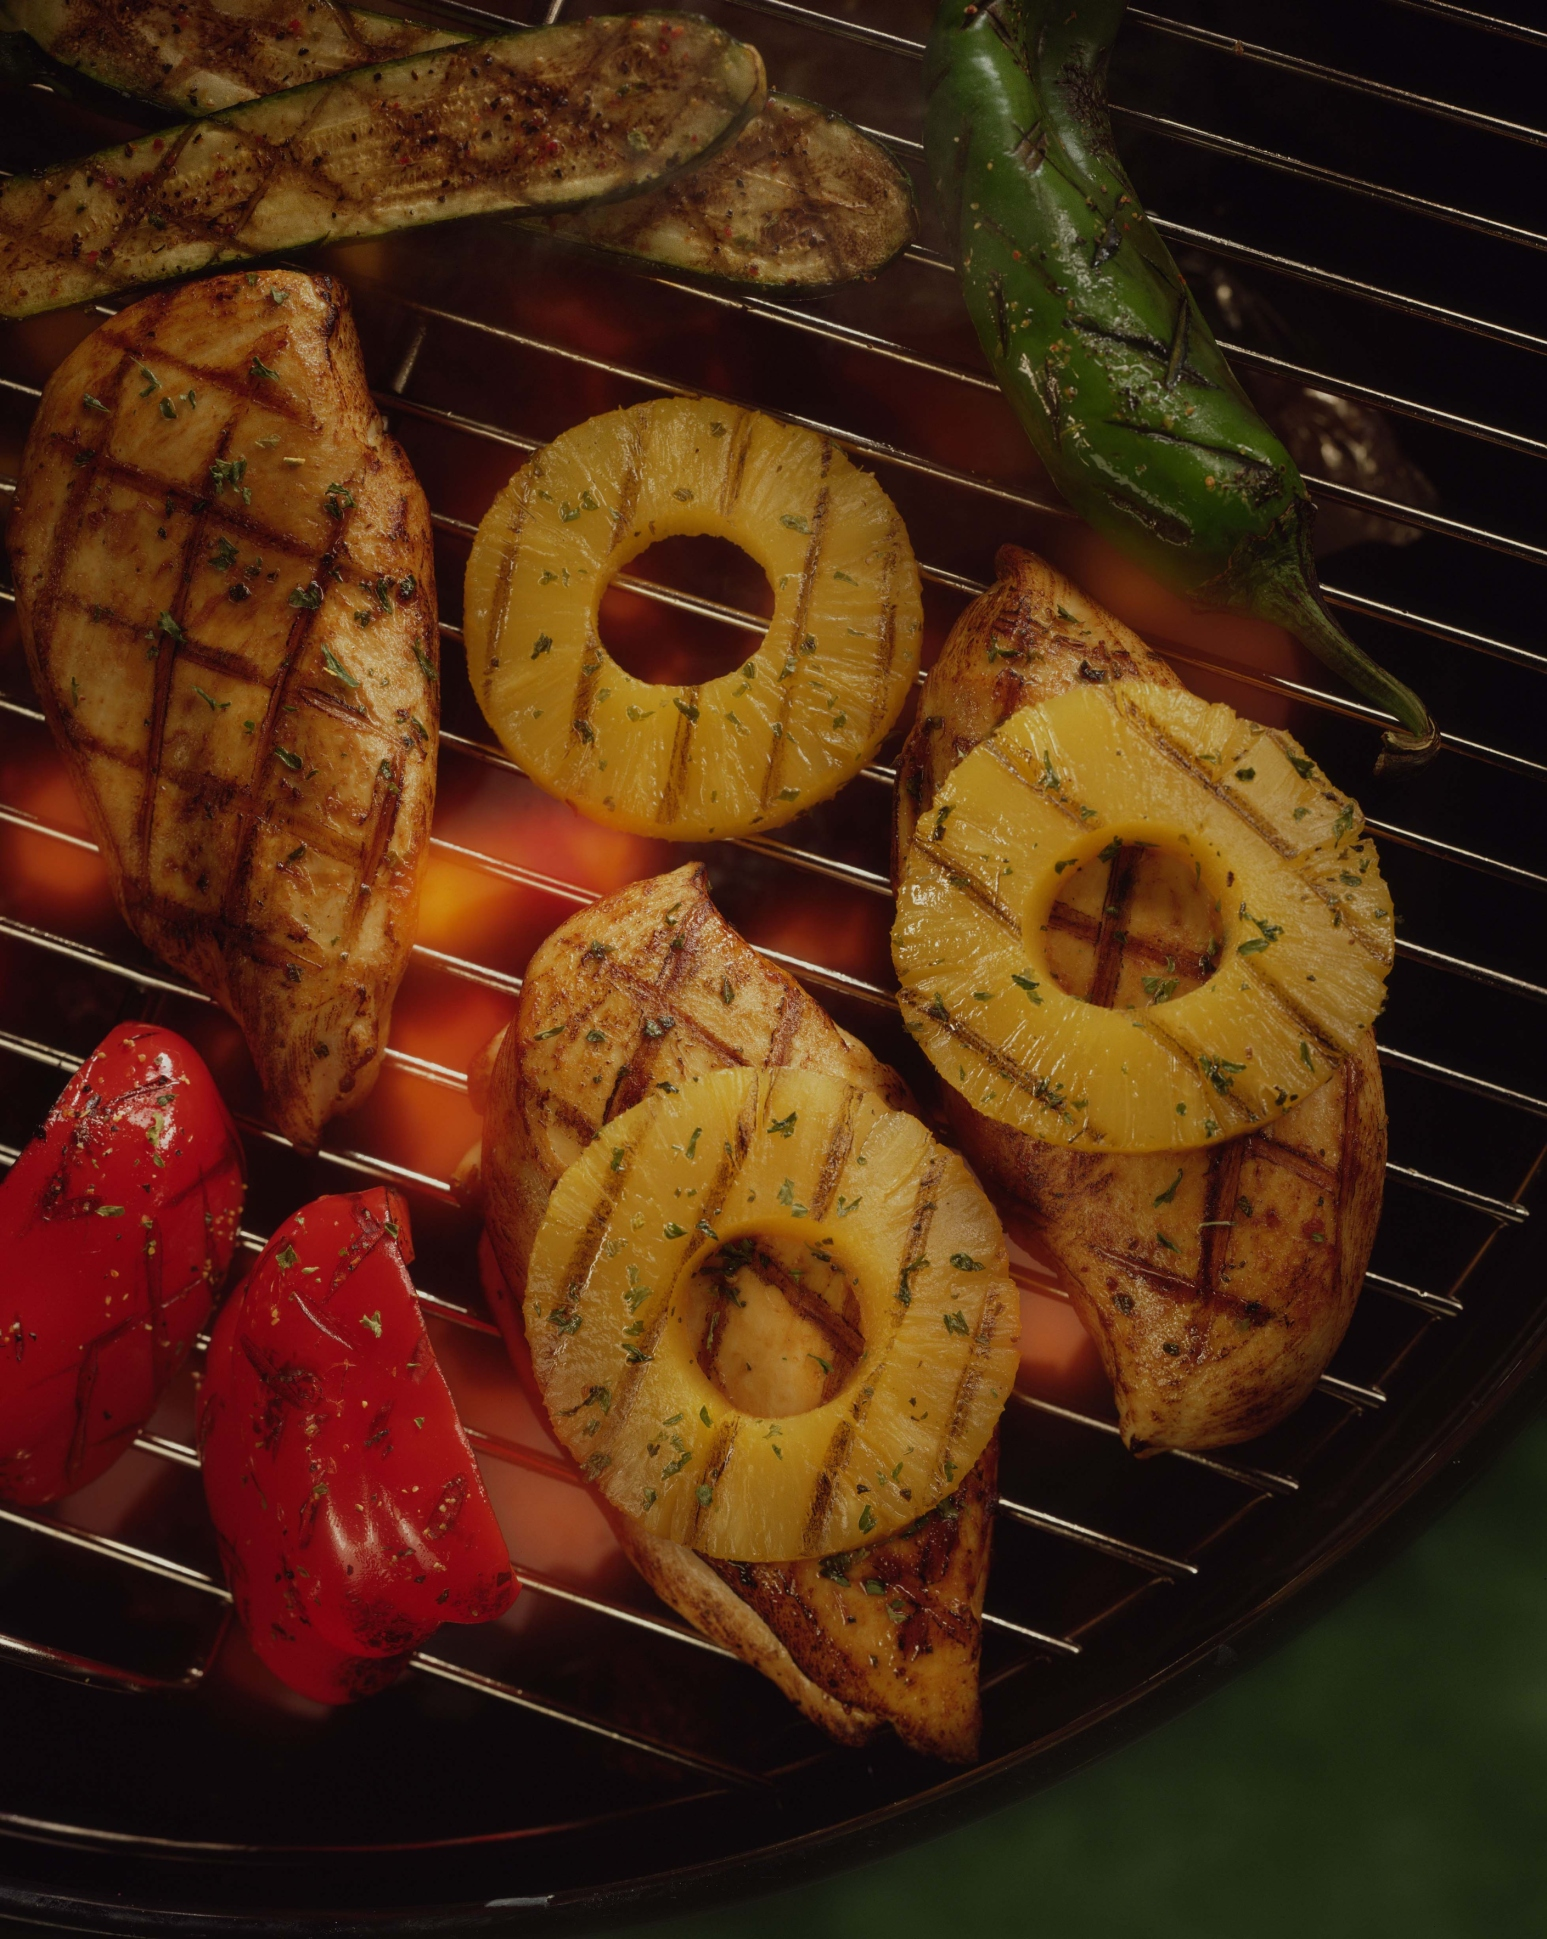 Grilled chicken is moist with a smoky flavor.